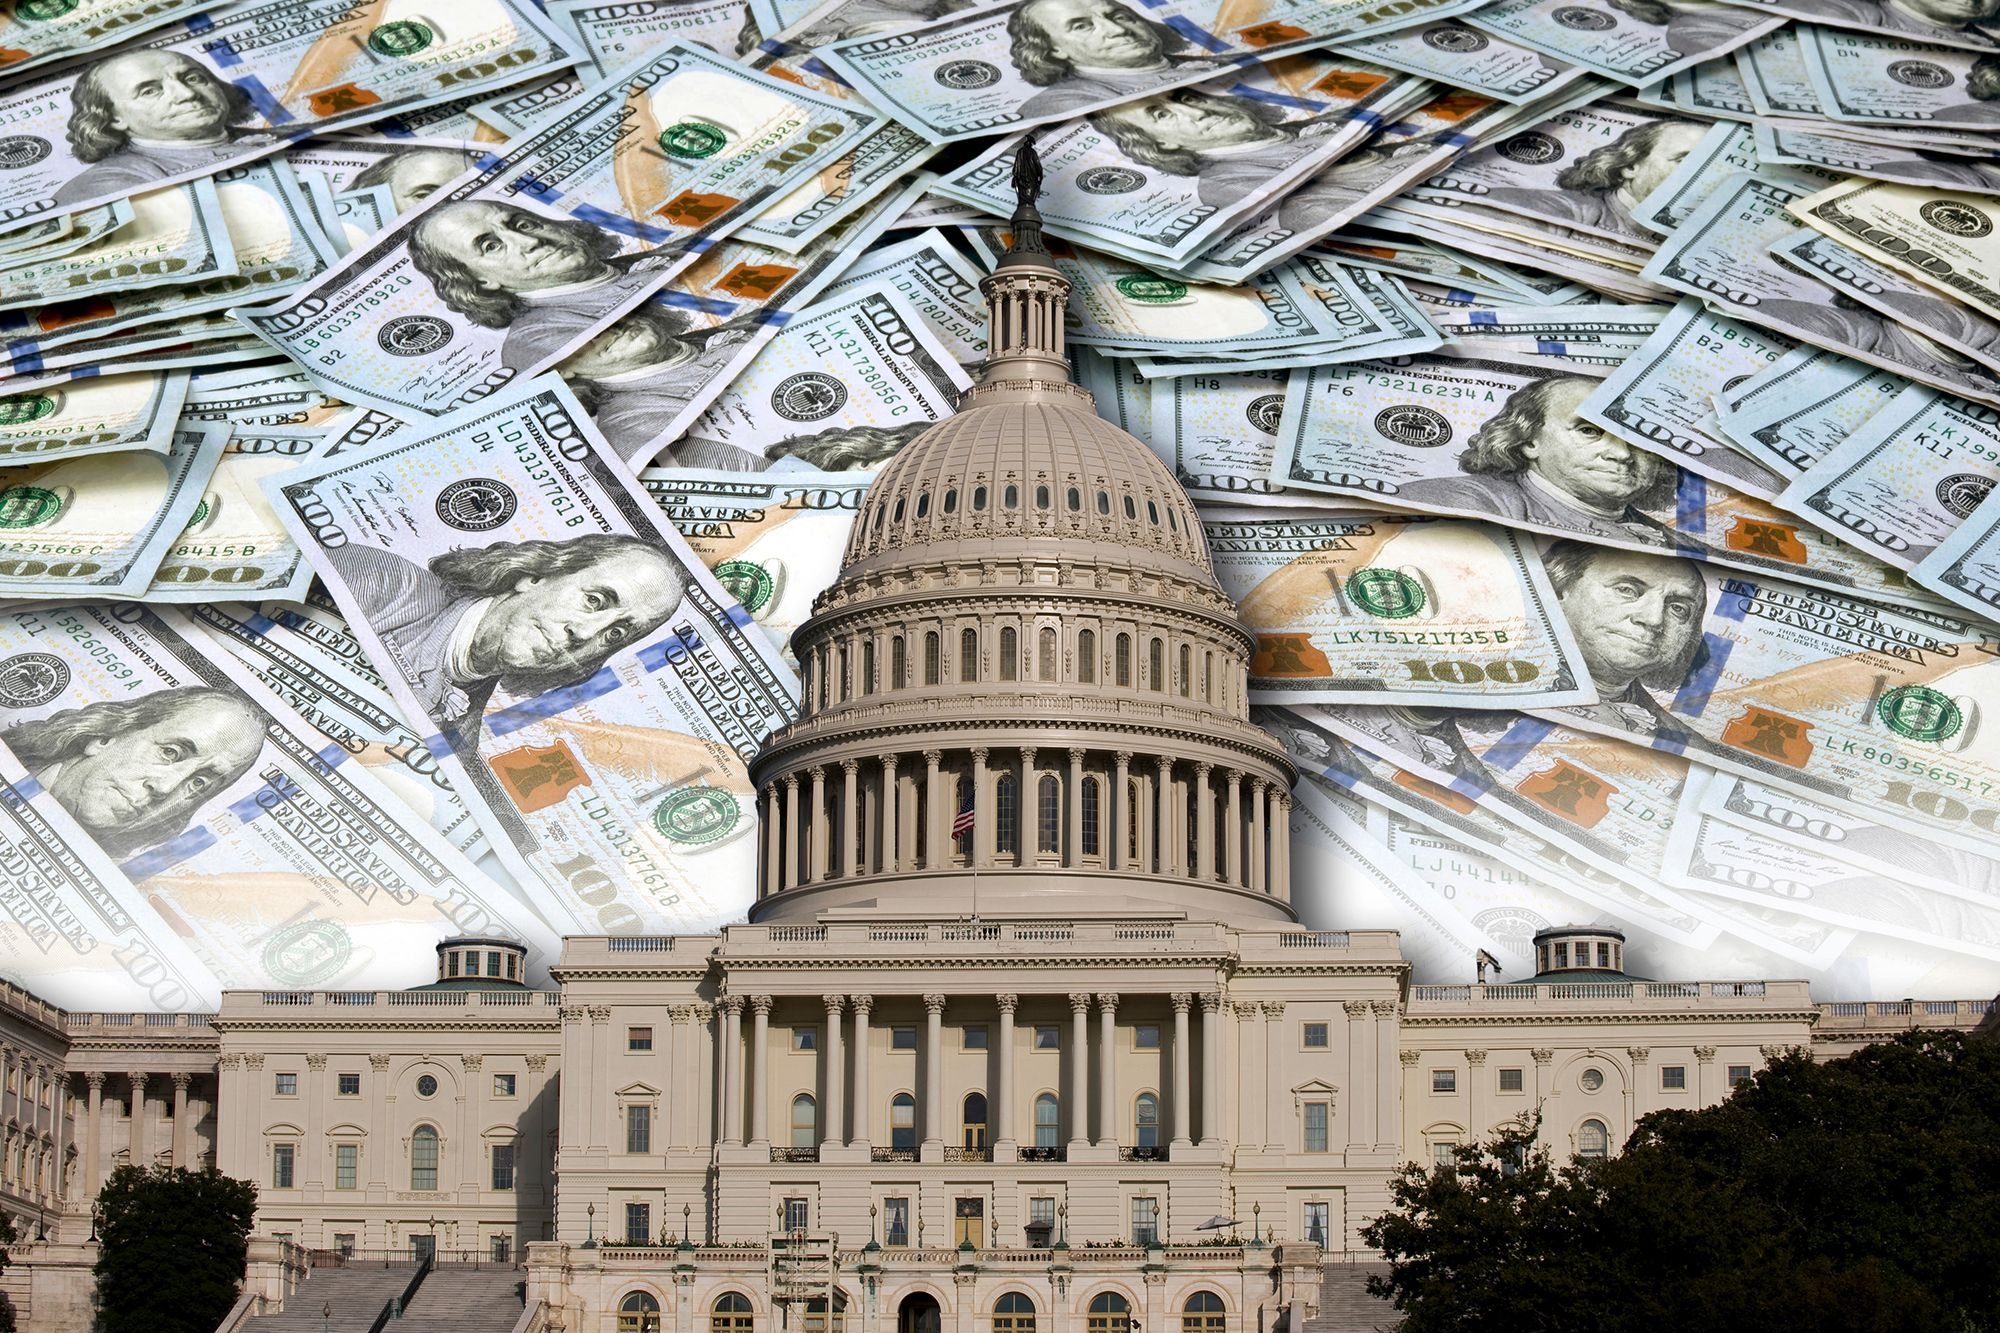 Big Spending Money Mischief Hurts the Nation: Can governments cure depressions by spending print and tax their way to prosperity as most lawmakers now believe? No. The better way is so old it has been forgotten: less government, more liberty.